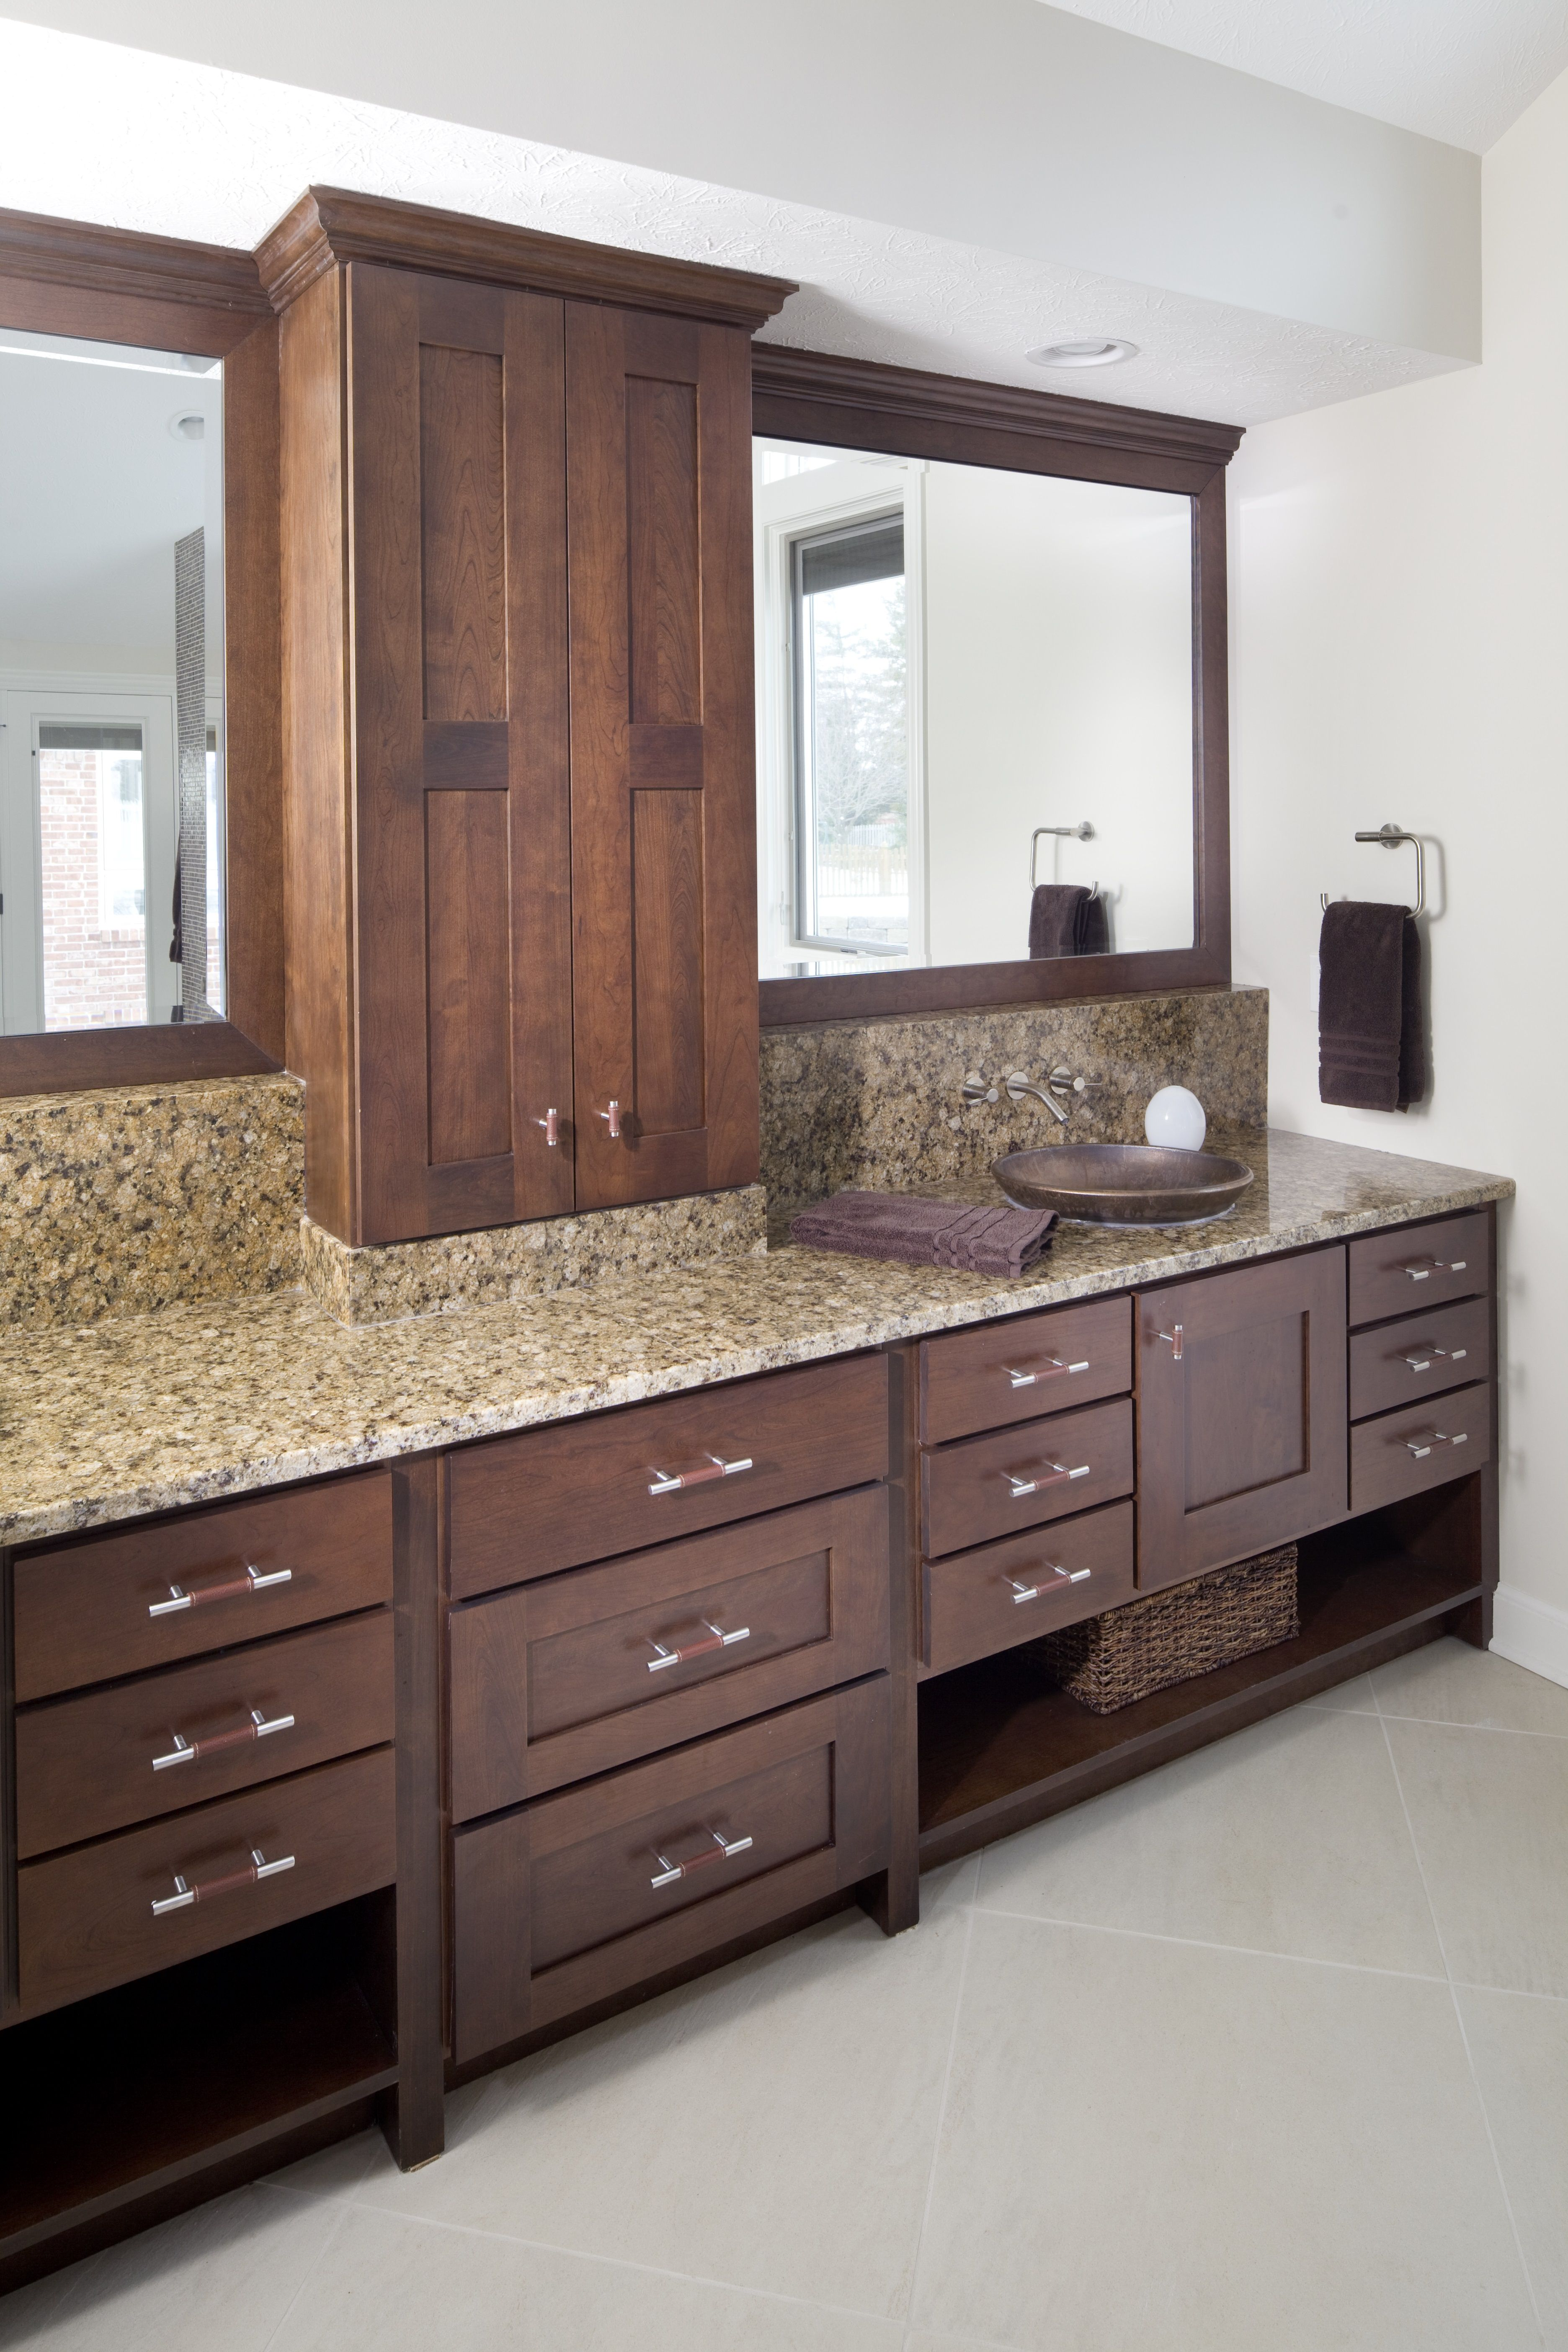 Master Bathroom Kitchens By Design Indianapolis Beautiful Interiors